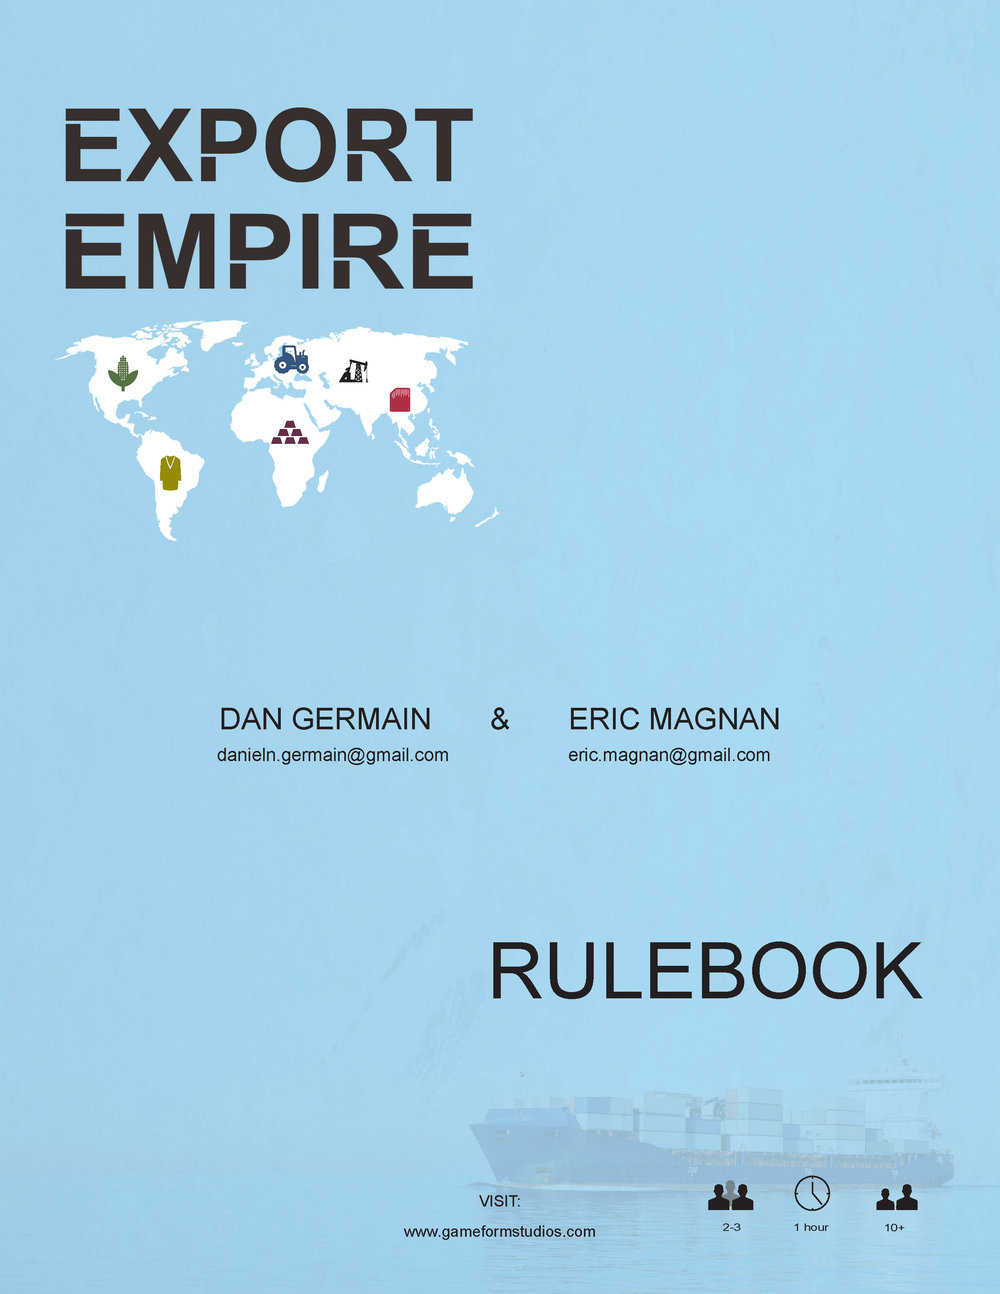 Export Empire Rulebook_Page_1.jpg